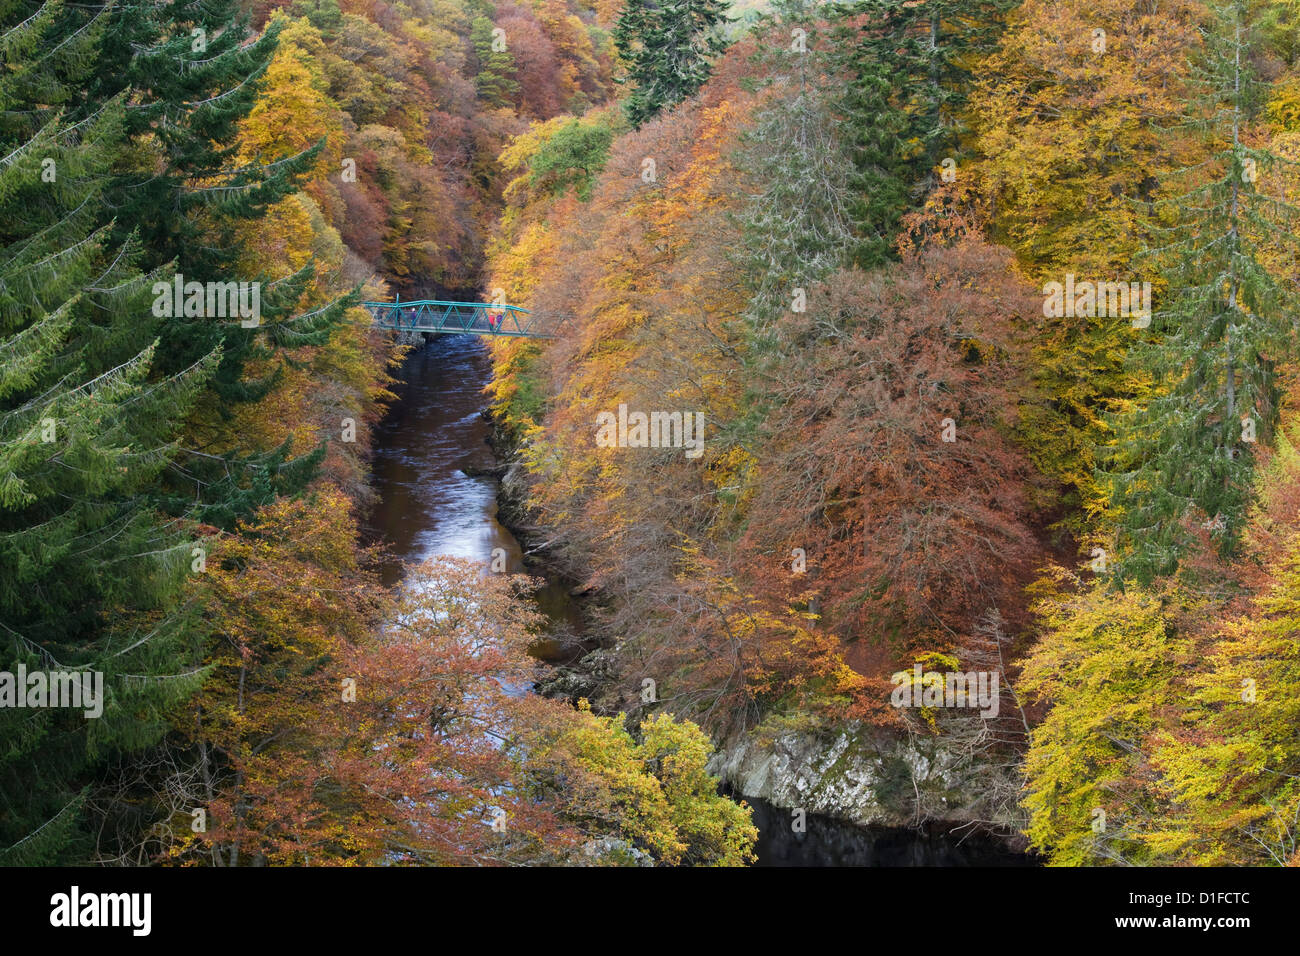 Pass of Killecrankie, Pitlochry, Perthshire, Scotland, United Kingdom, Europe - Stock Image